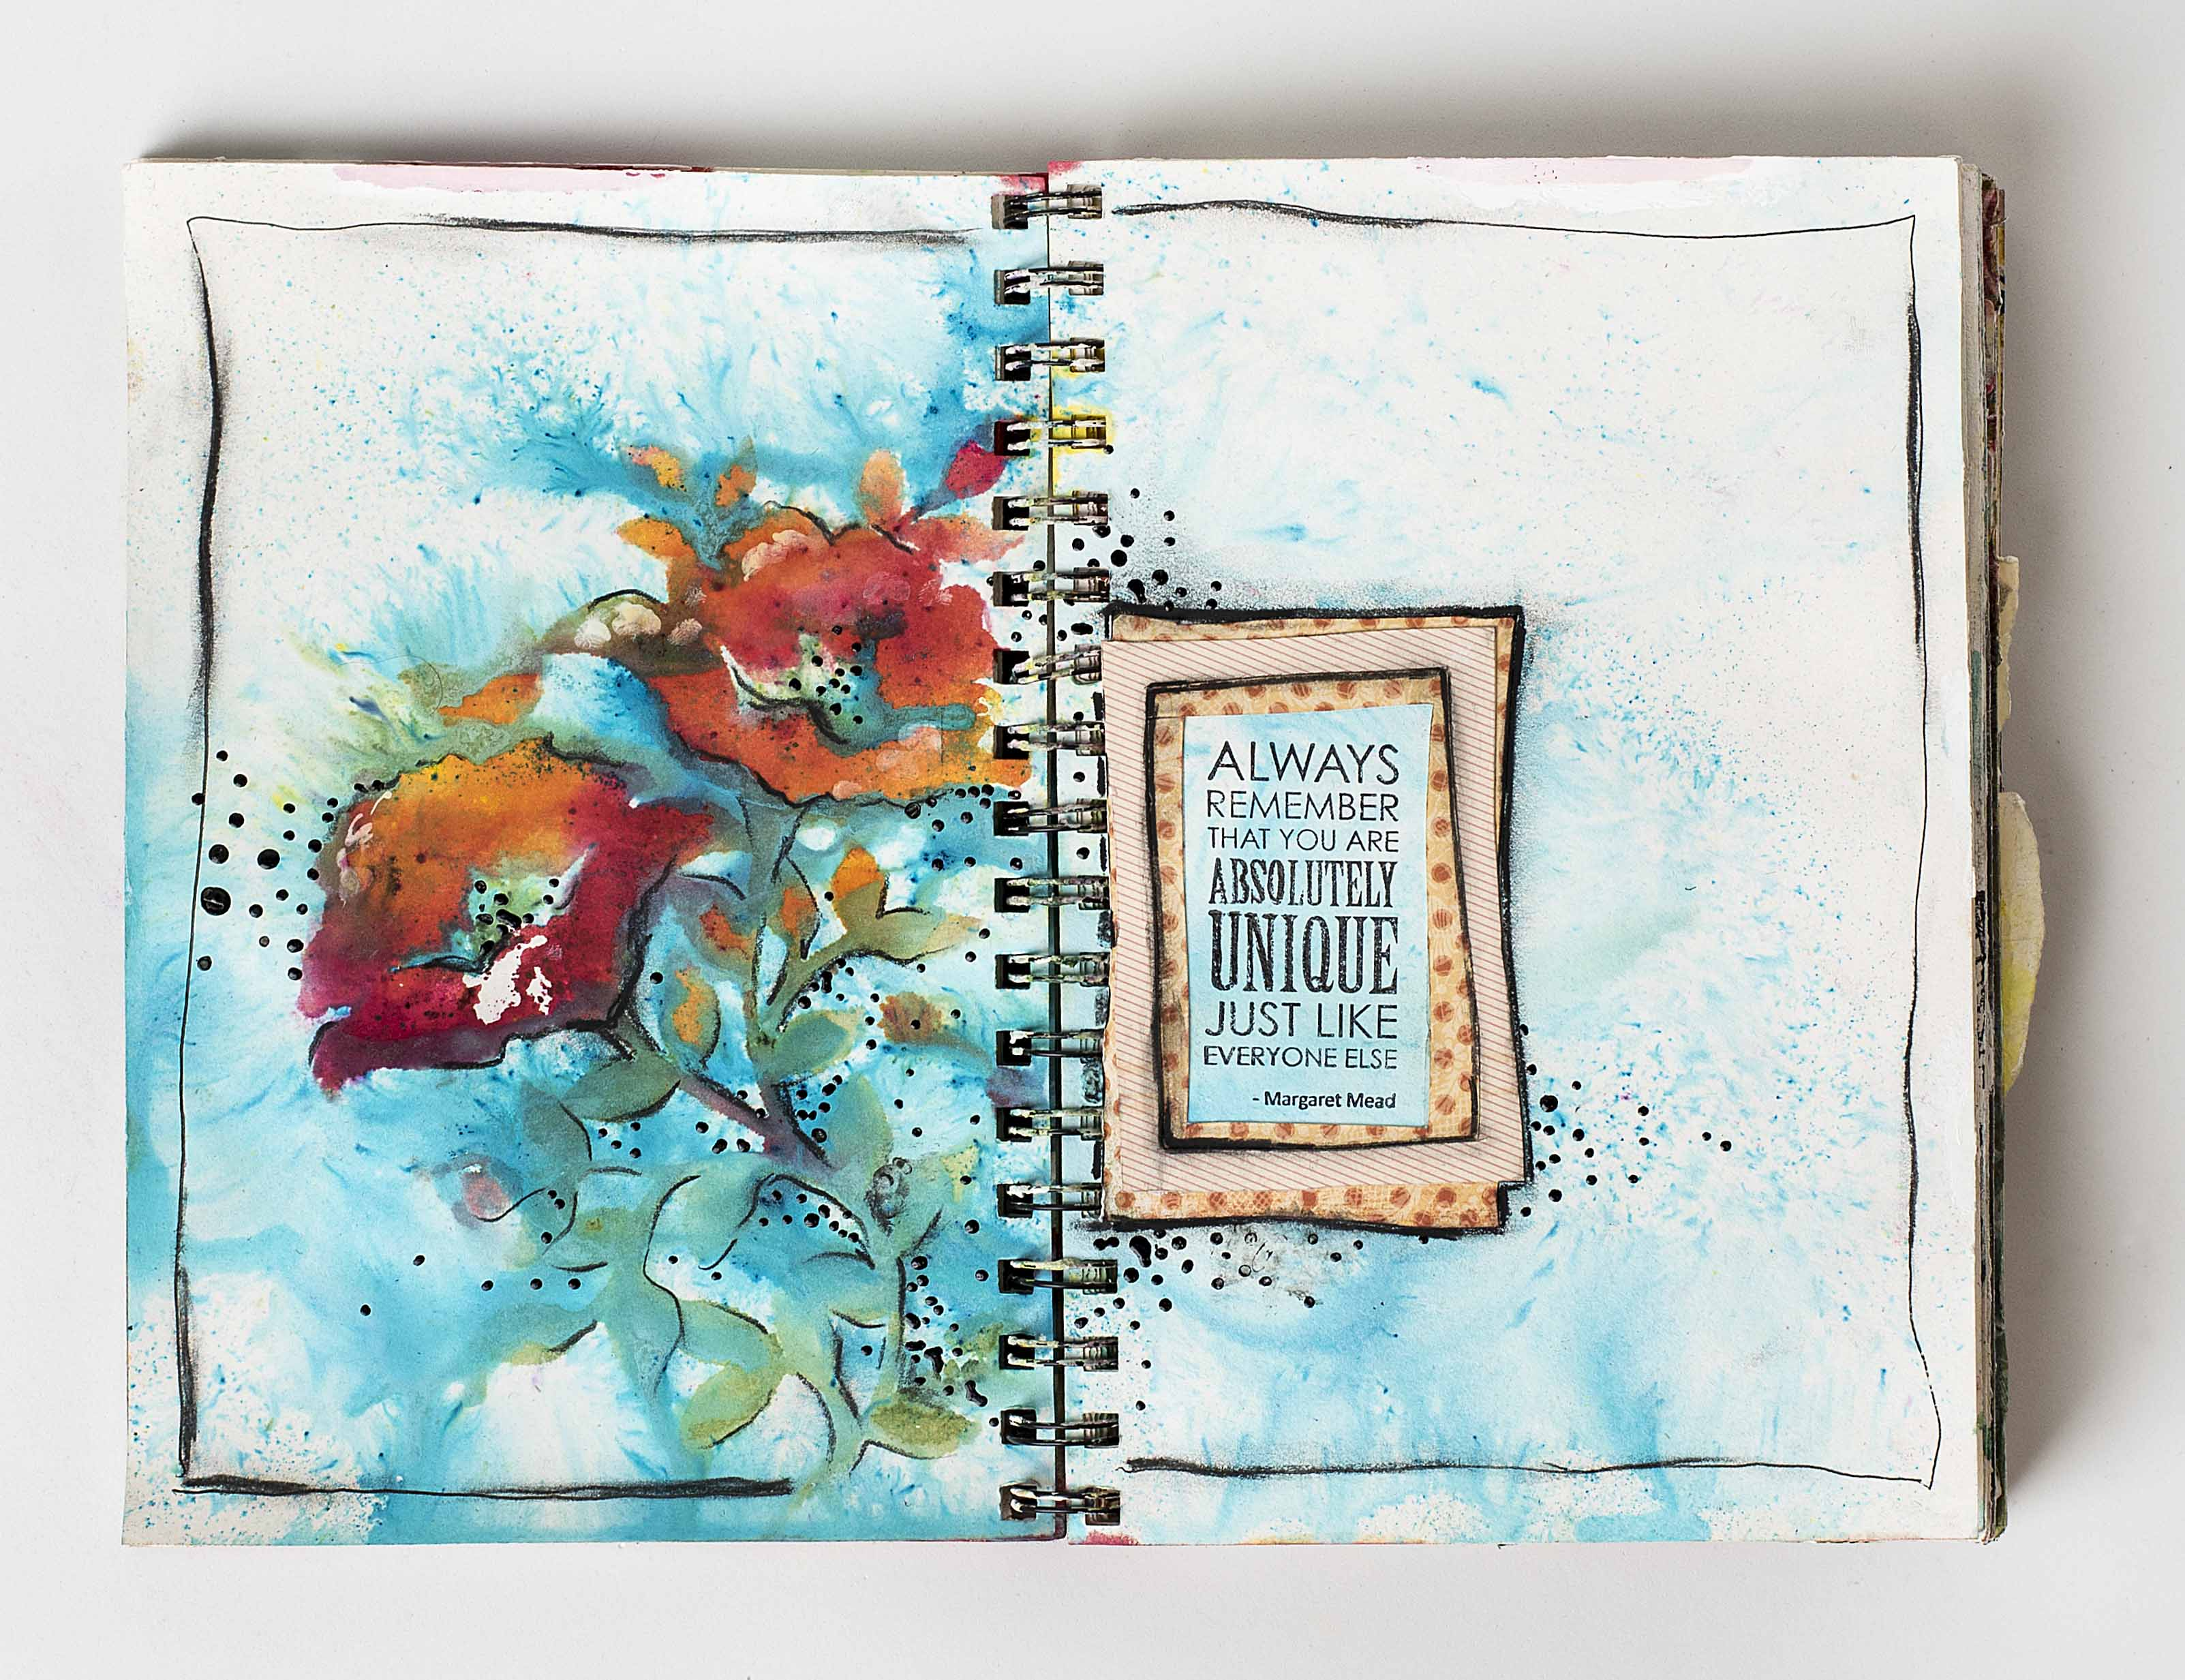 Art journal page designed by Christy Riopel featuring mixed media techniques with stencils, nuance powders and flower like images.